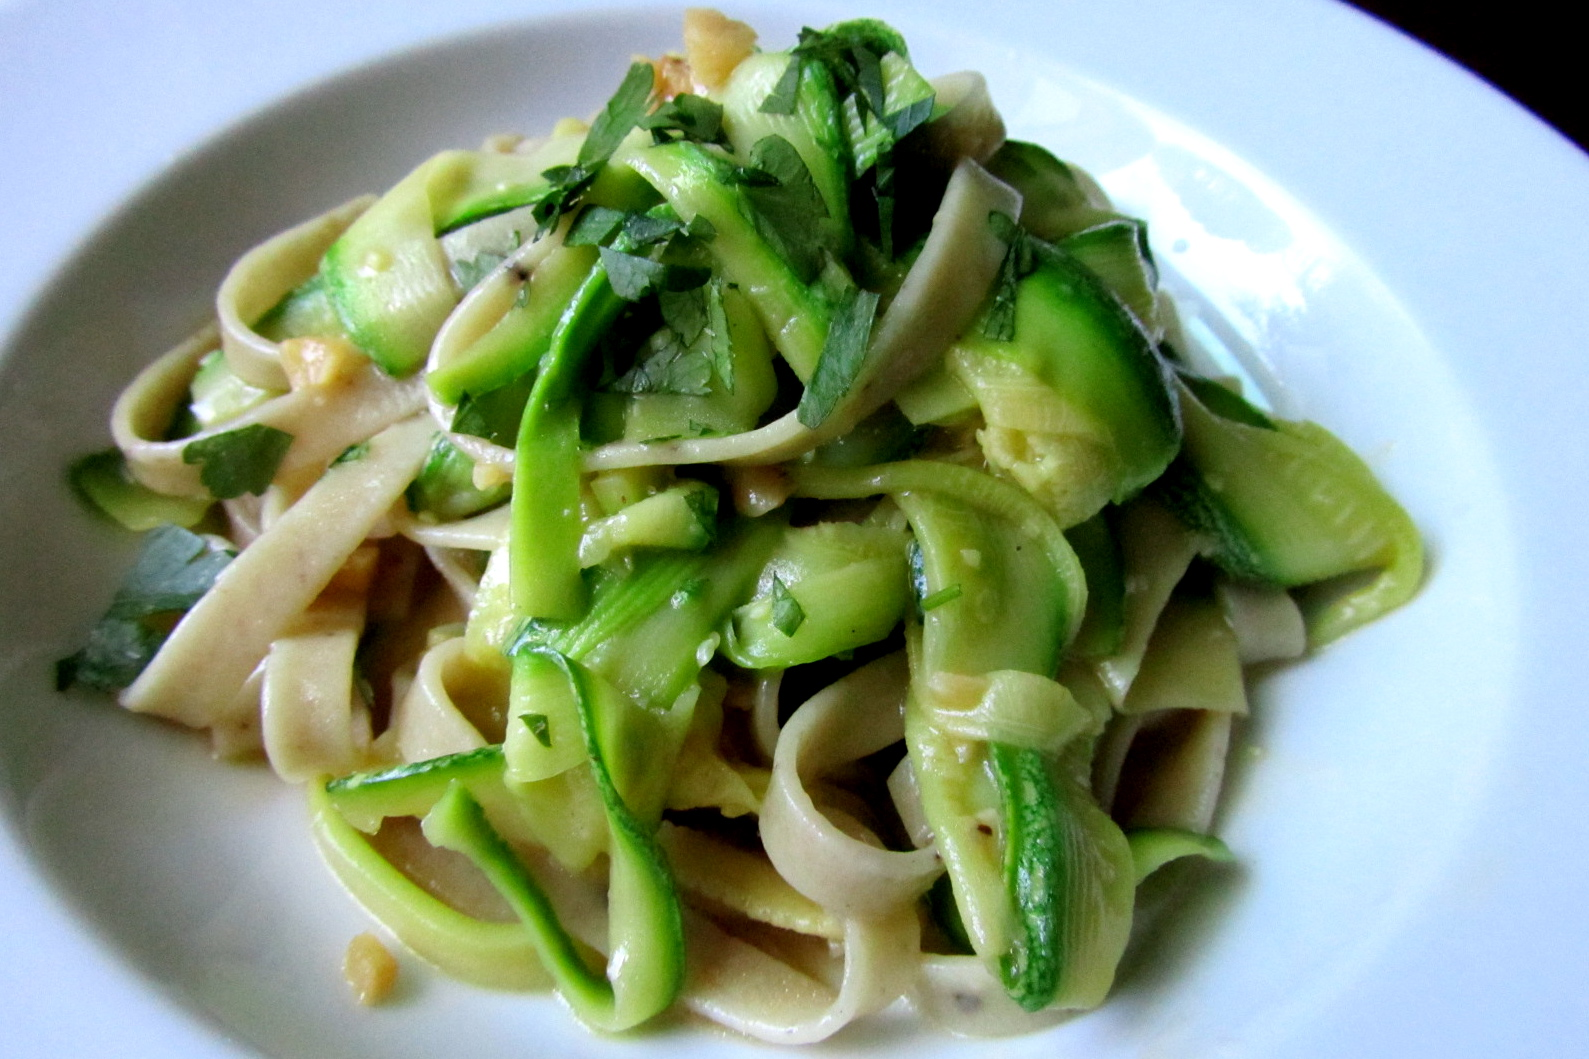 Spaghetti With Peas And Zucchini Ribbons Recipes — Dishmaps